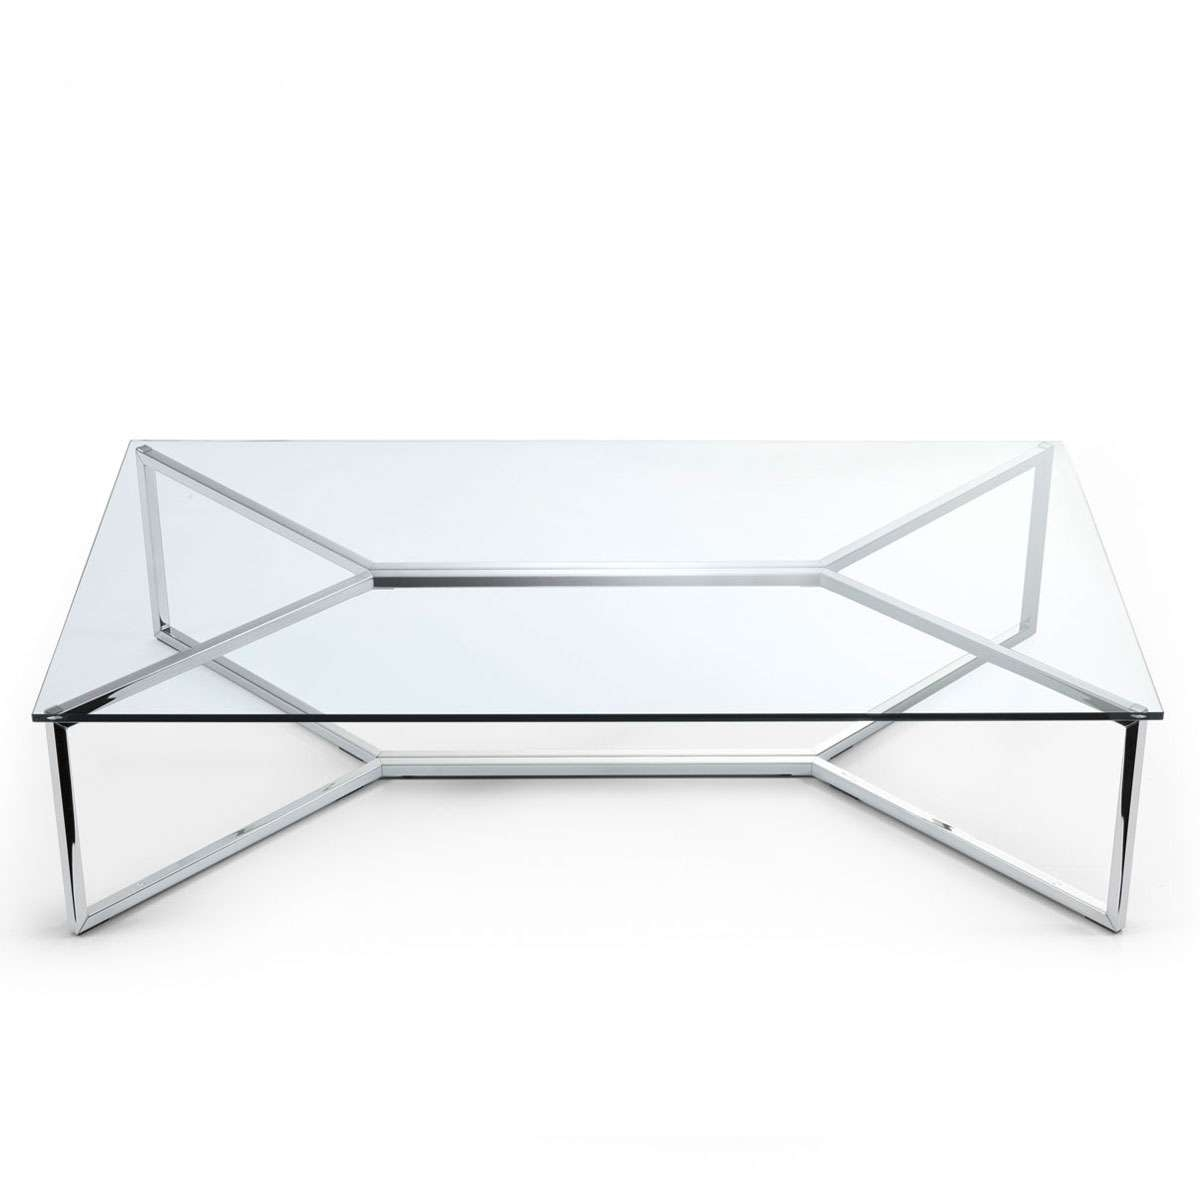 Marvellous Glass And Metal Coffee Table Ideas – Glass And Metal For 2018 Glass Metal Coffee Tables (View 5 of 20)